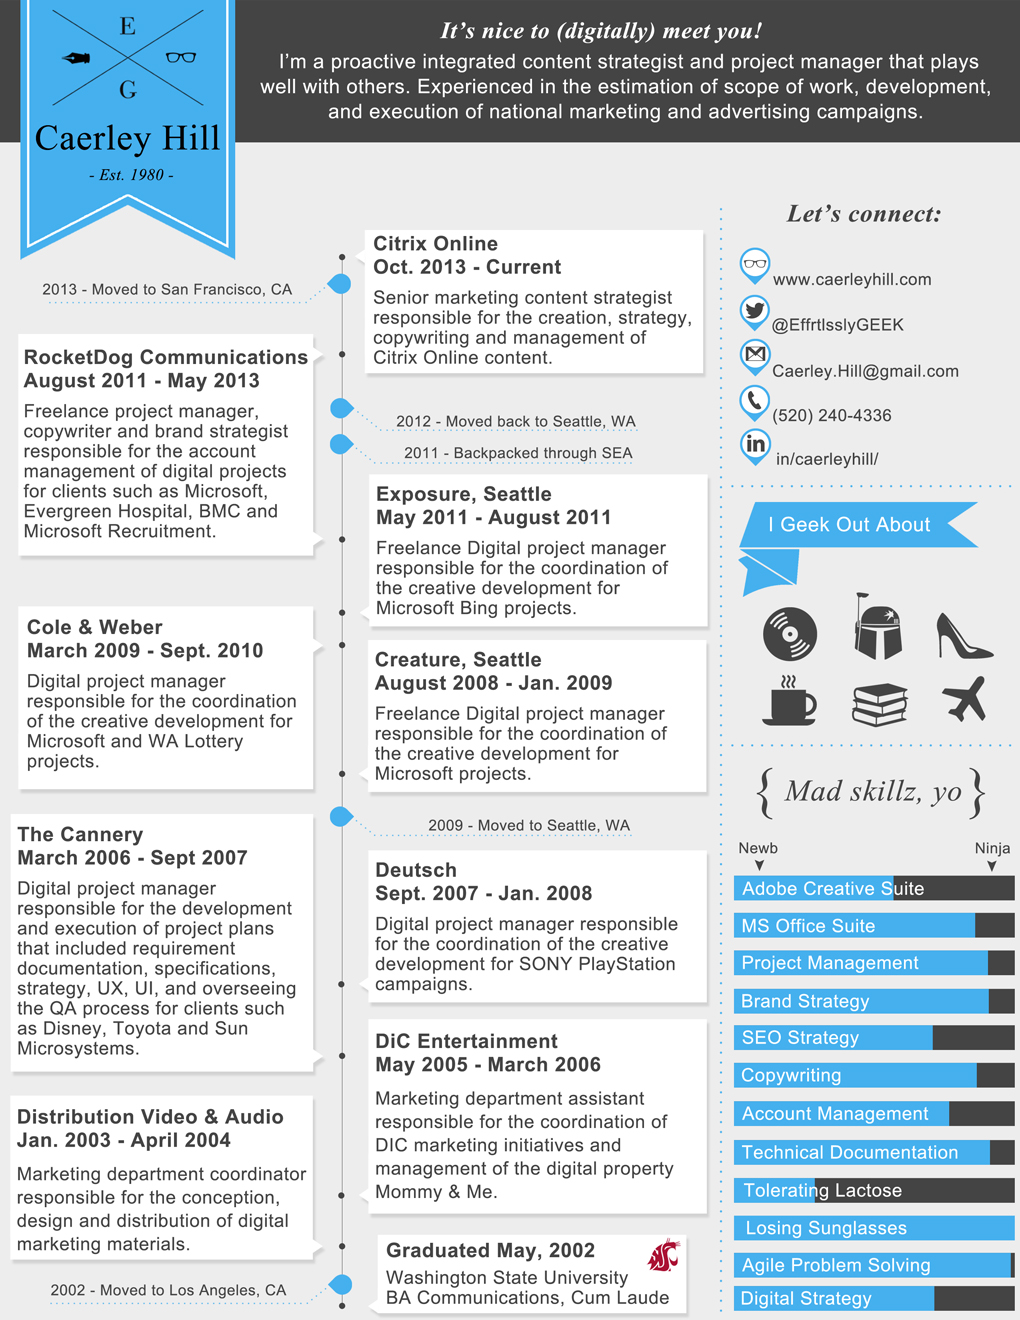 How & Why I Put Together my Infographic Resume - Caerley Hill ...